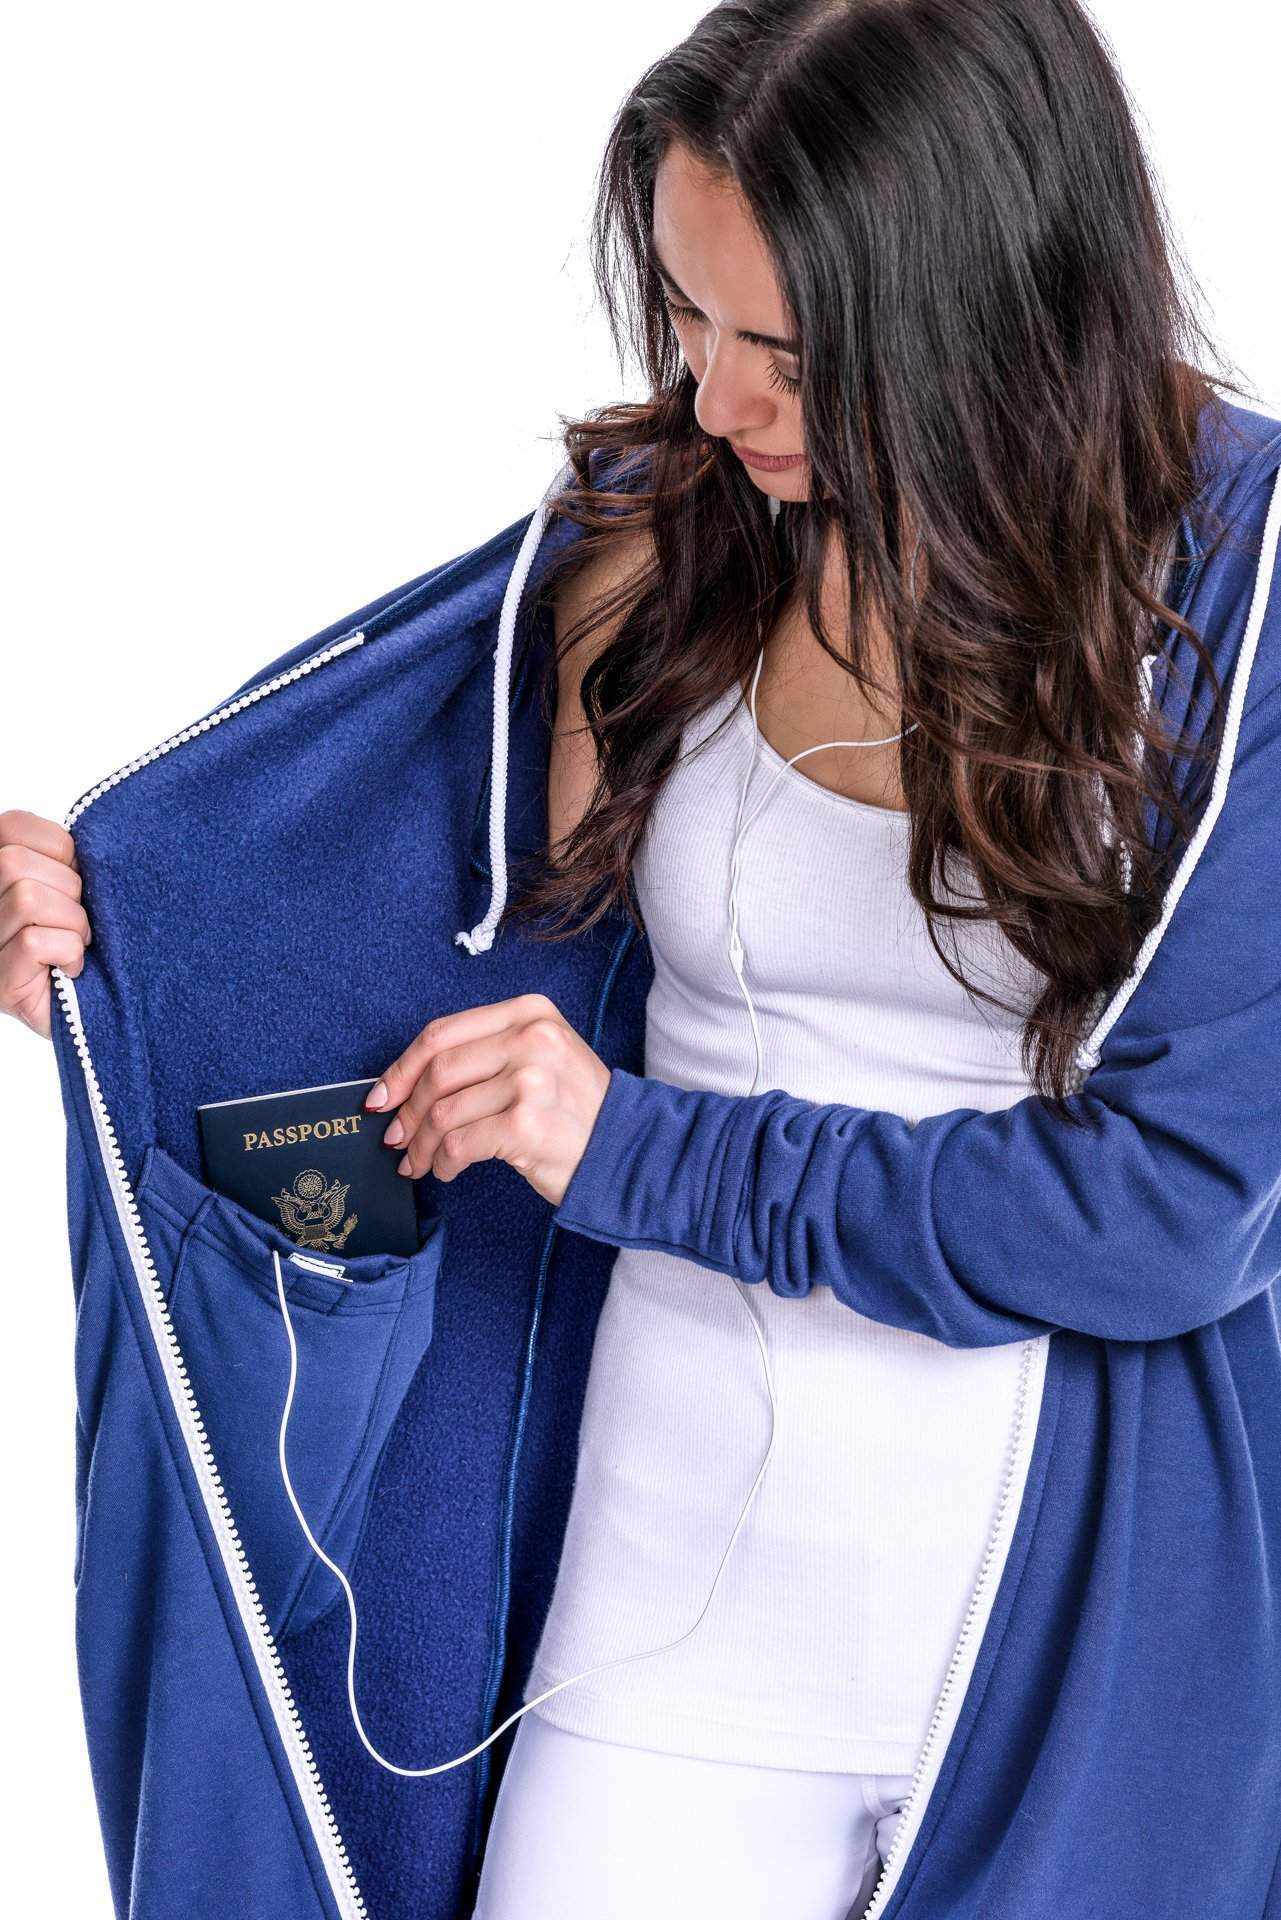 rev'pod™ | ultra-soft travel + loungewear | #revpod | Pockets for Passport and Phone